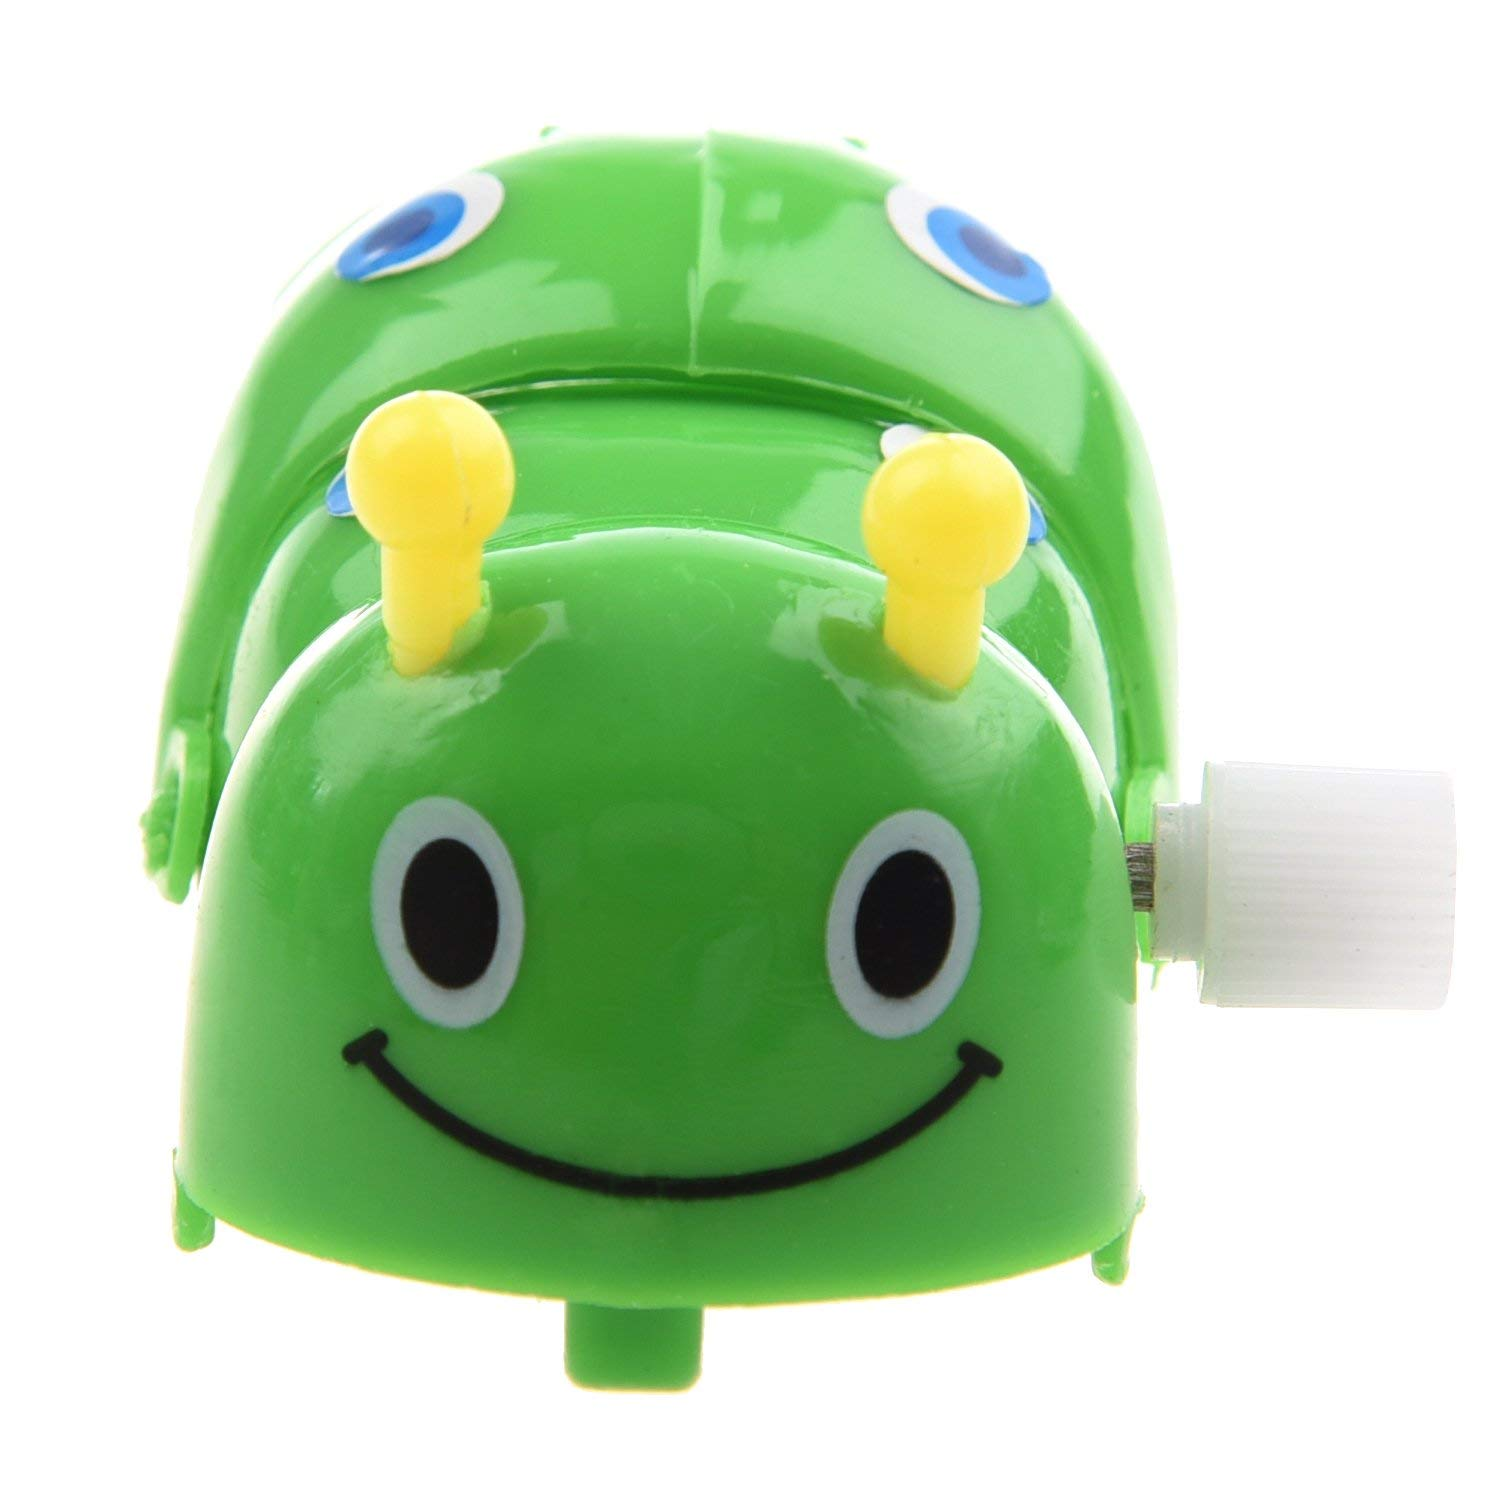 Yevison Children Clockwork Spring Toy Green Plastic Cartoon Creeping Insect Durable and Useful by Yevison